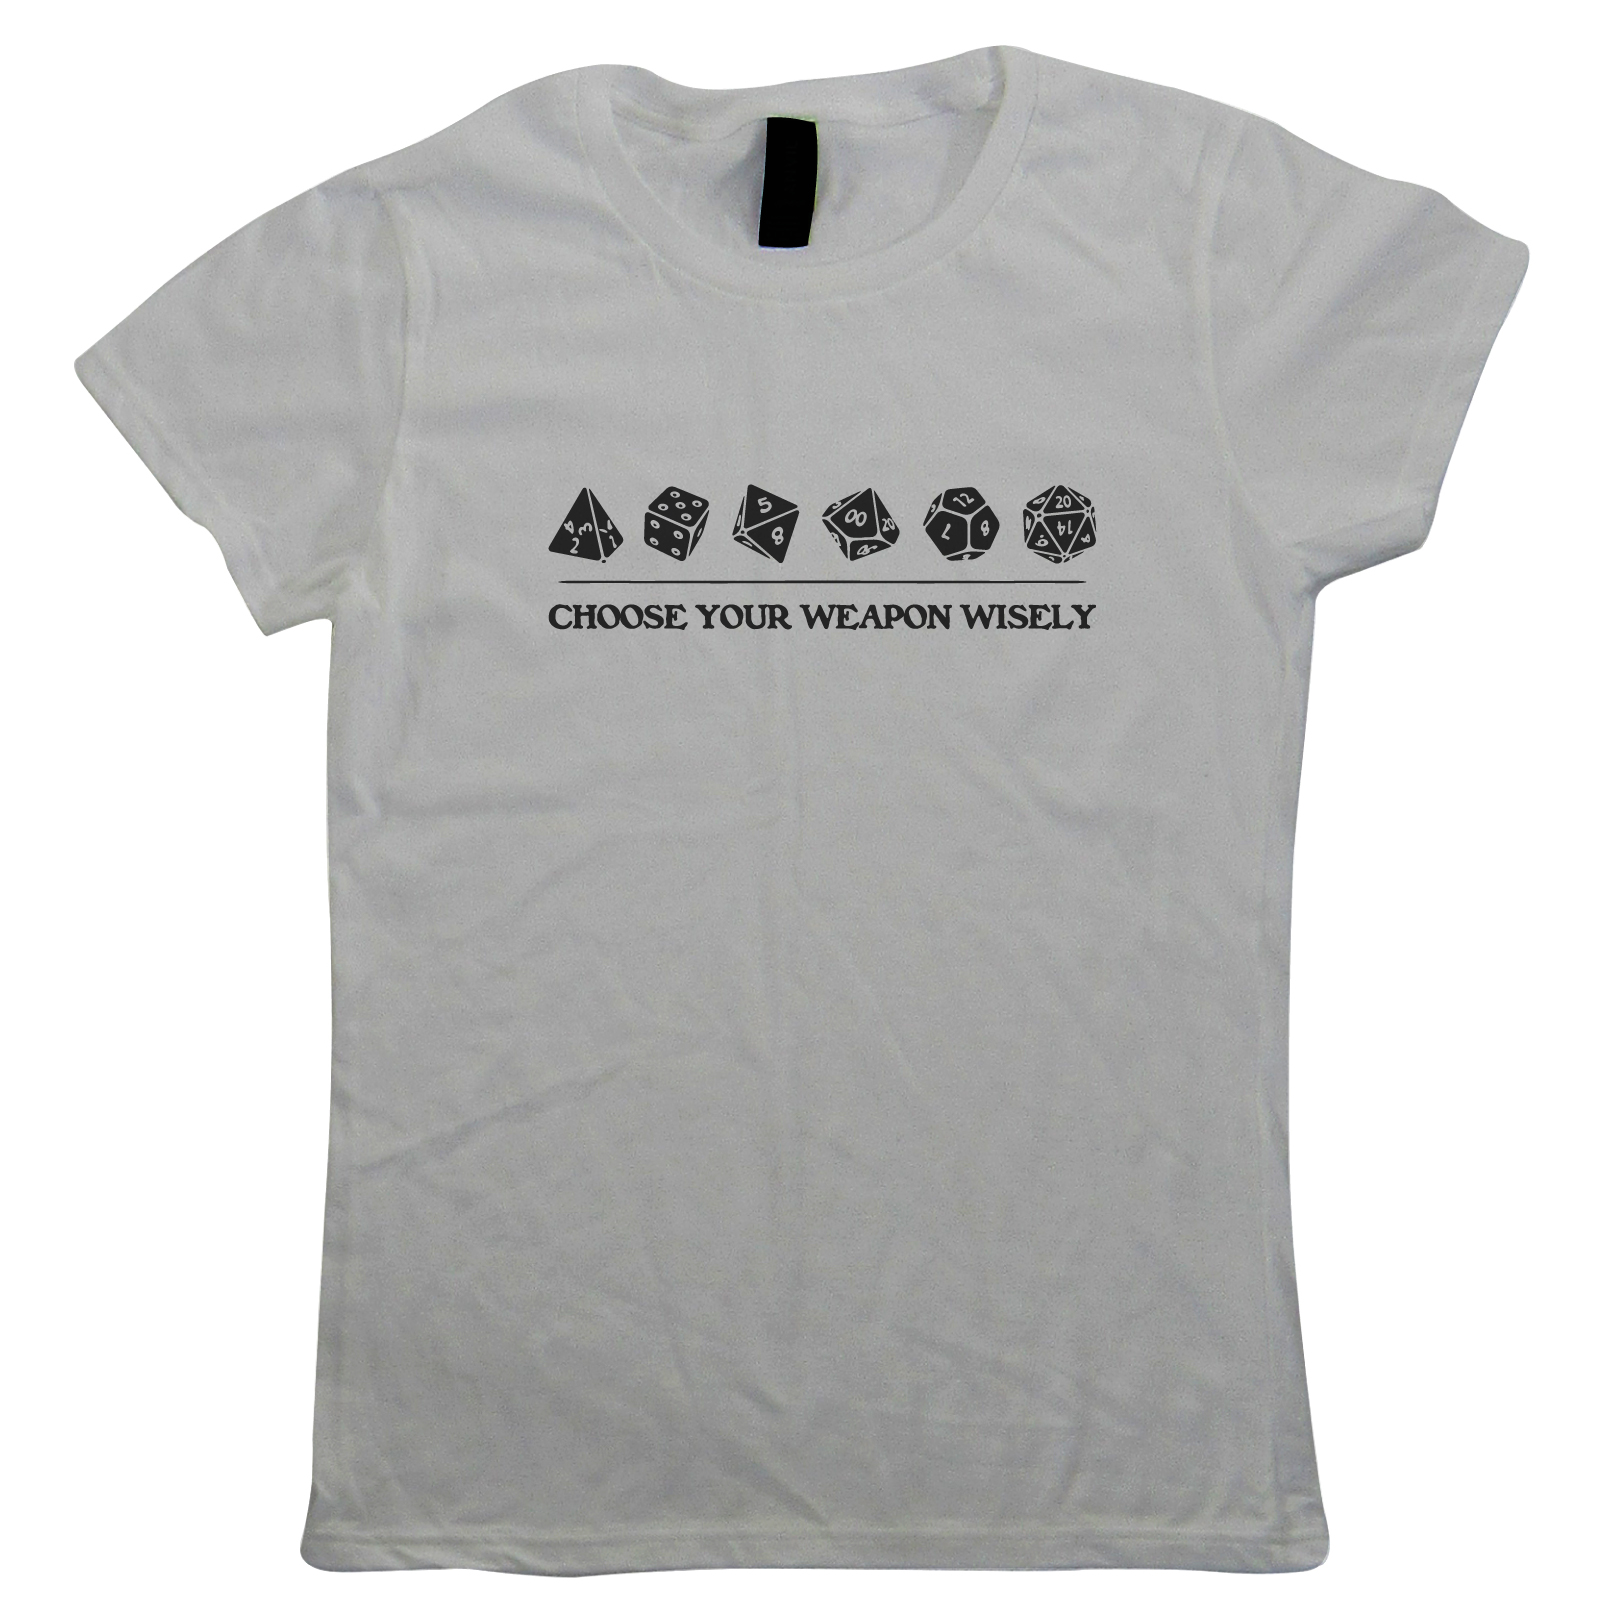 Choose-Your-Weapon-Wisely-Womens-T-Shirt-Hobbies-DND-Dungeon-Dragons-Gift-Her thumbnail 10